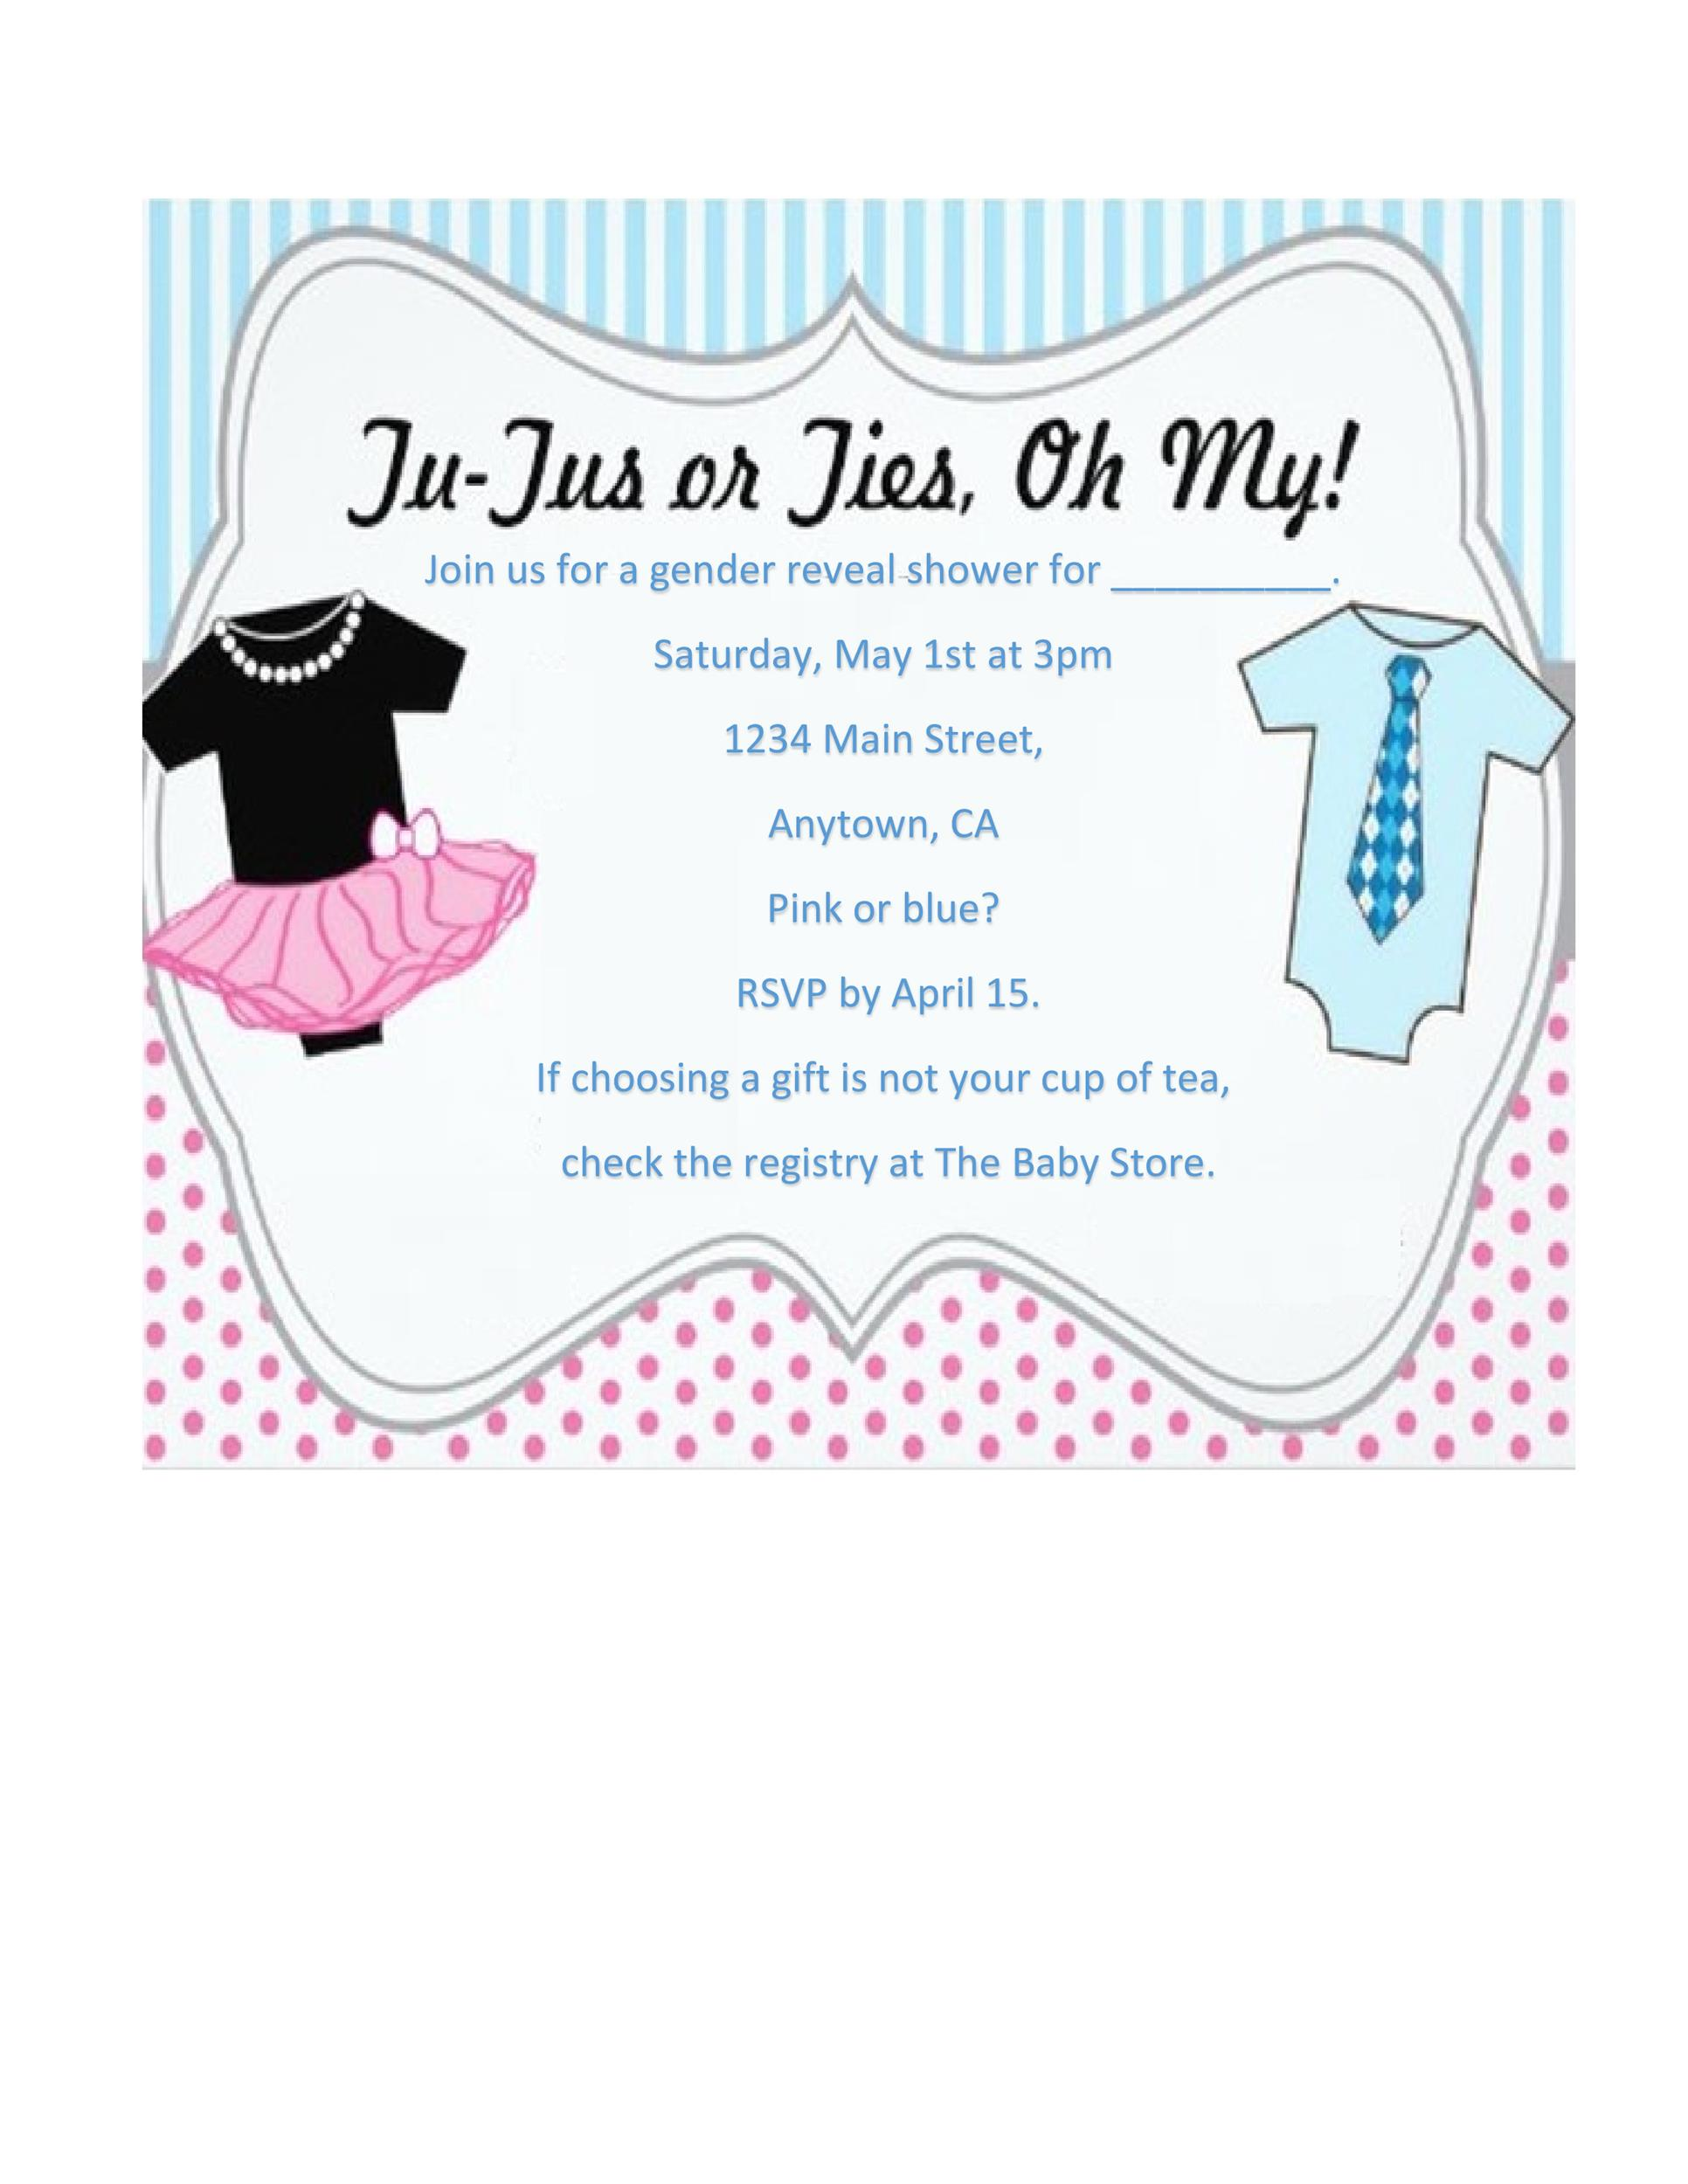 free gender reveal invitations Minimfagencyco